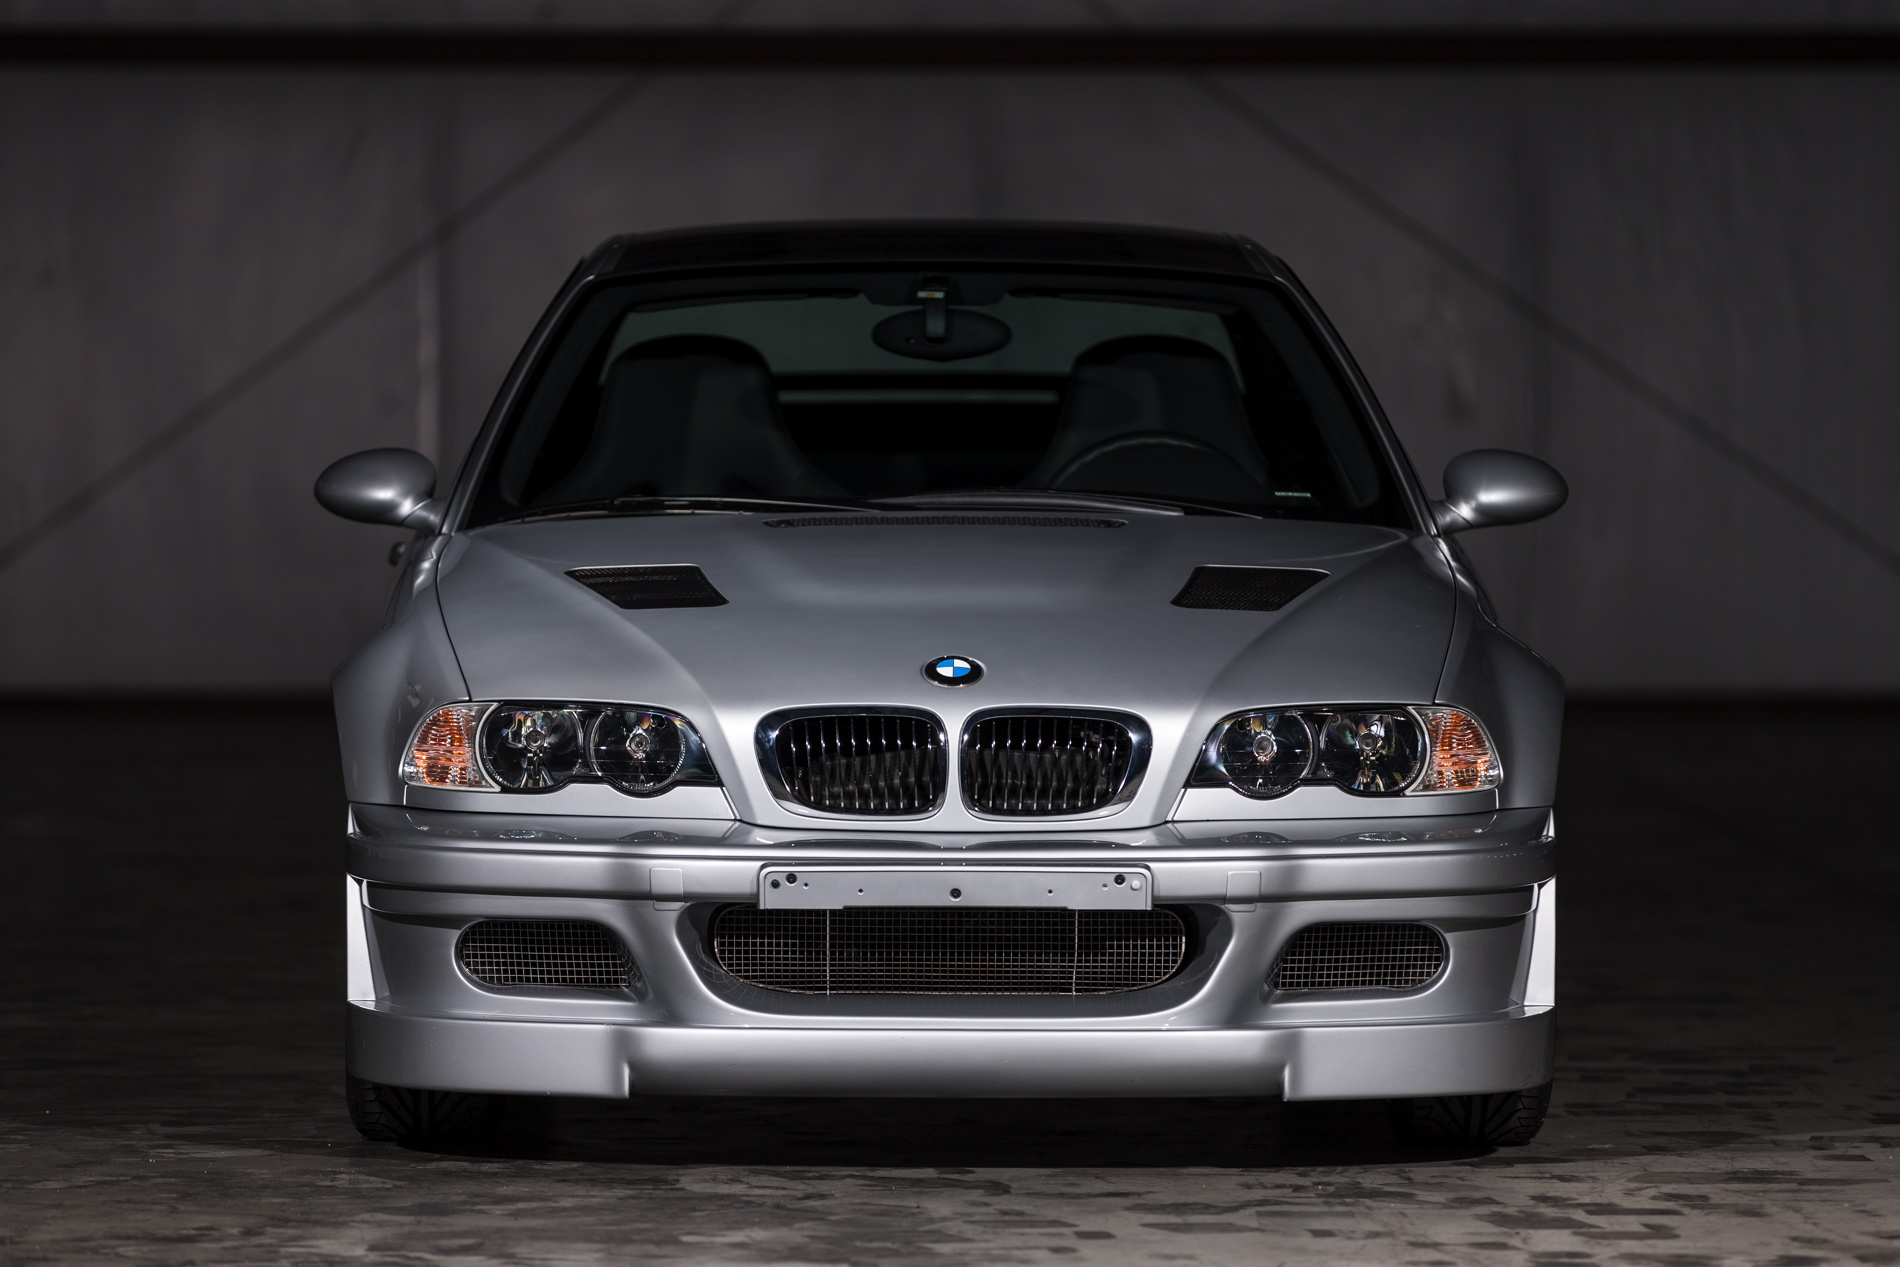 Bmw E46 M3 Gtr One Of The Most Limited Production Models Ever Engine Diagram Road Version 1900x1200 Images 08 750x500